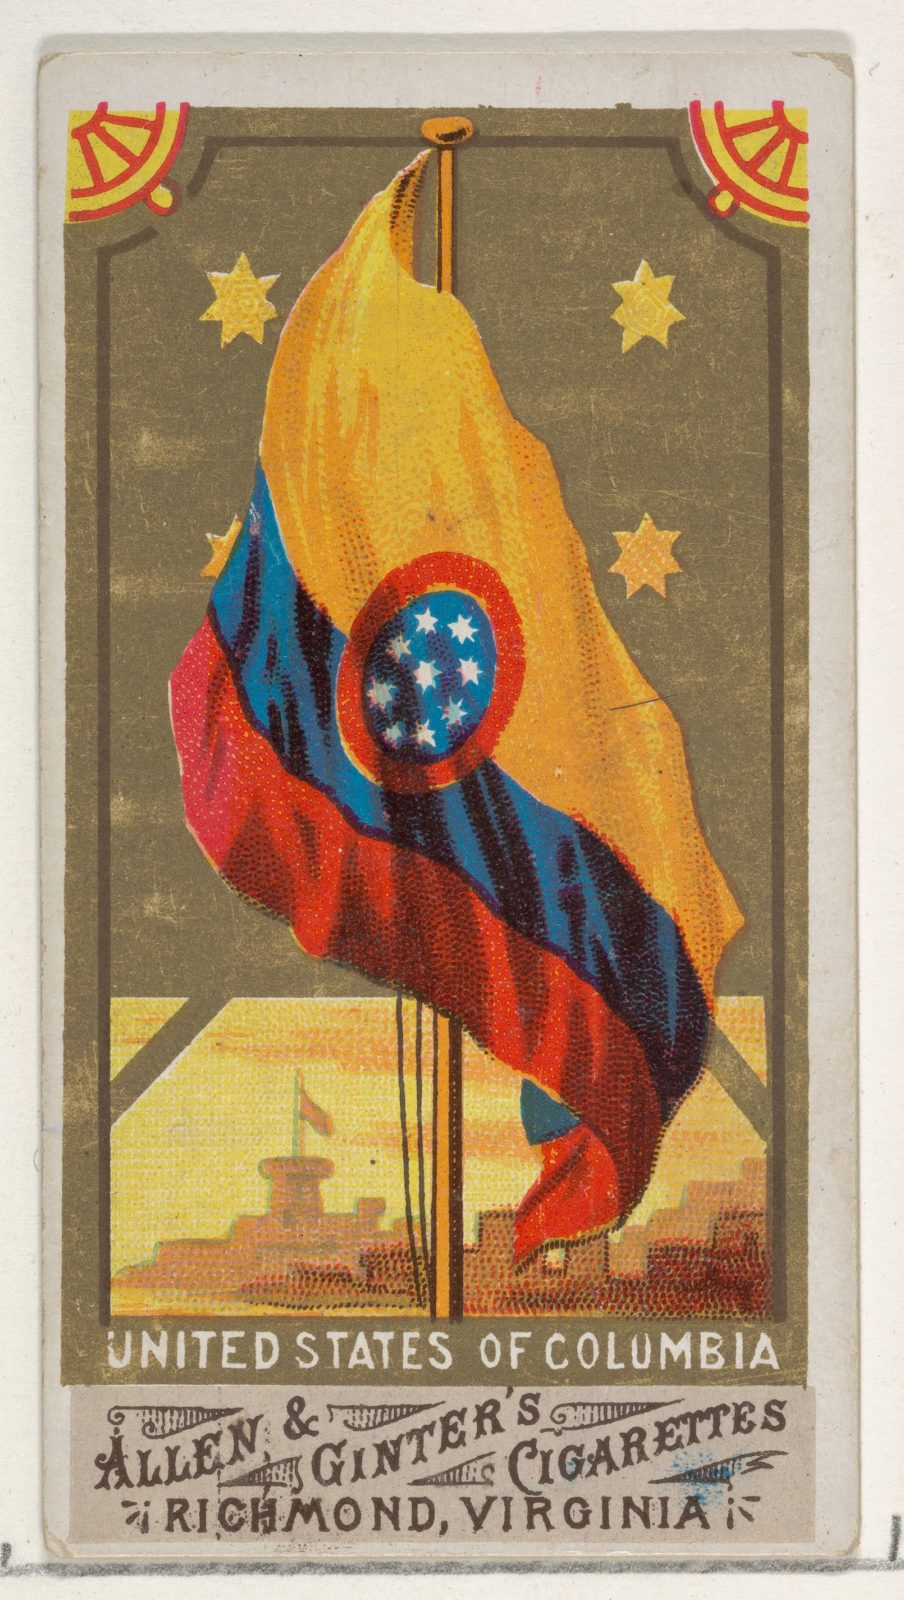 United States of Columbia, from Flags of All Nations, Series 1 (N9) for Allen & Ginter Cigarettes Brands